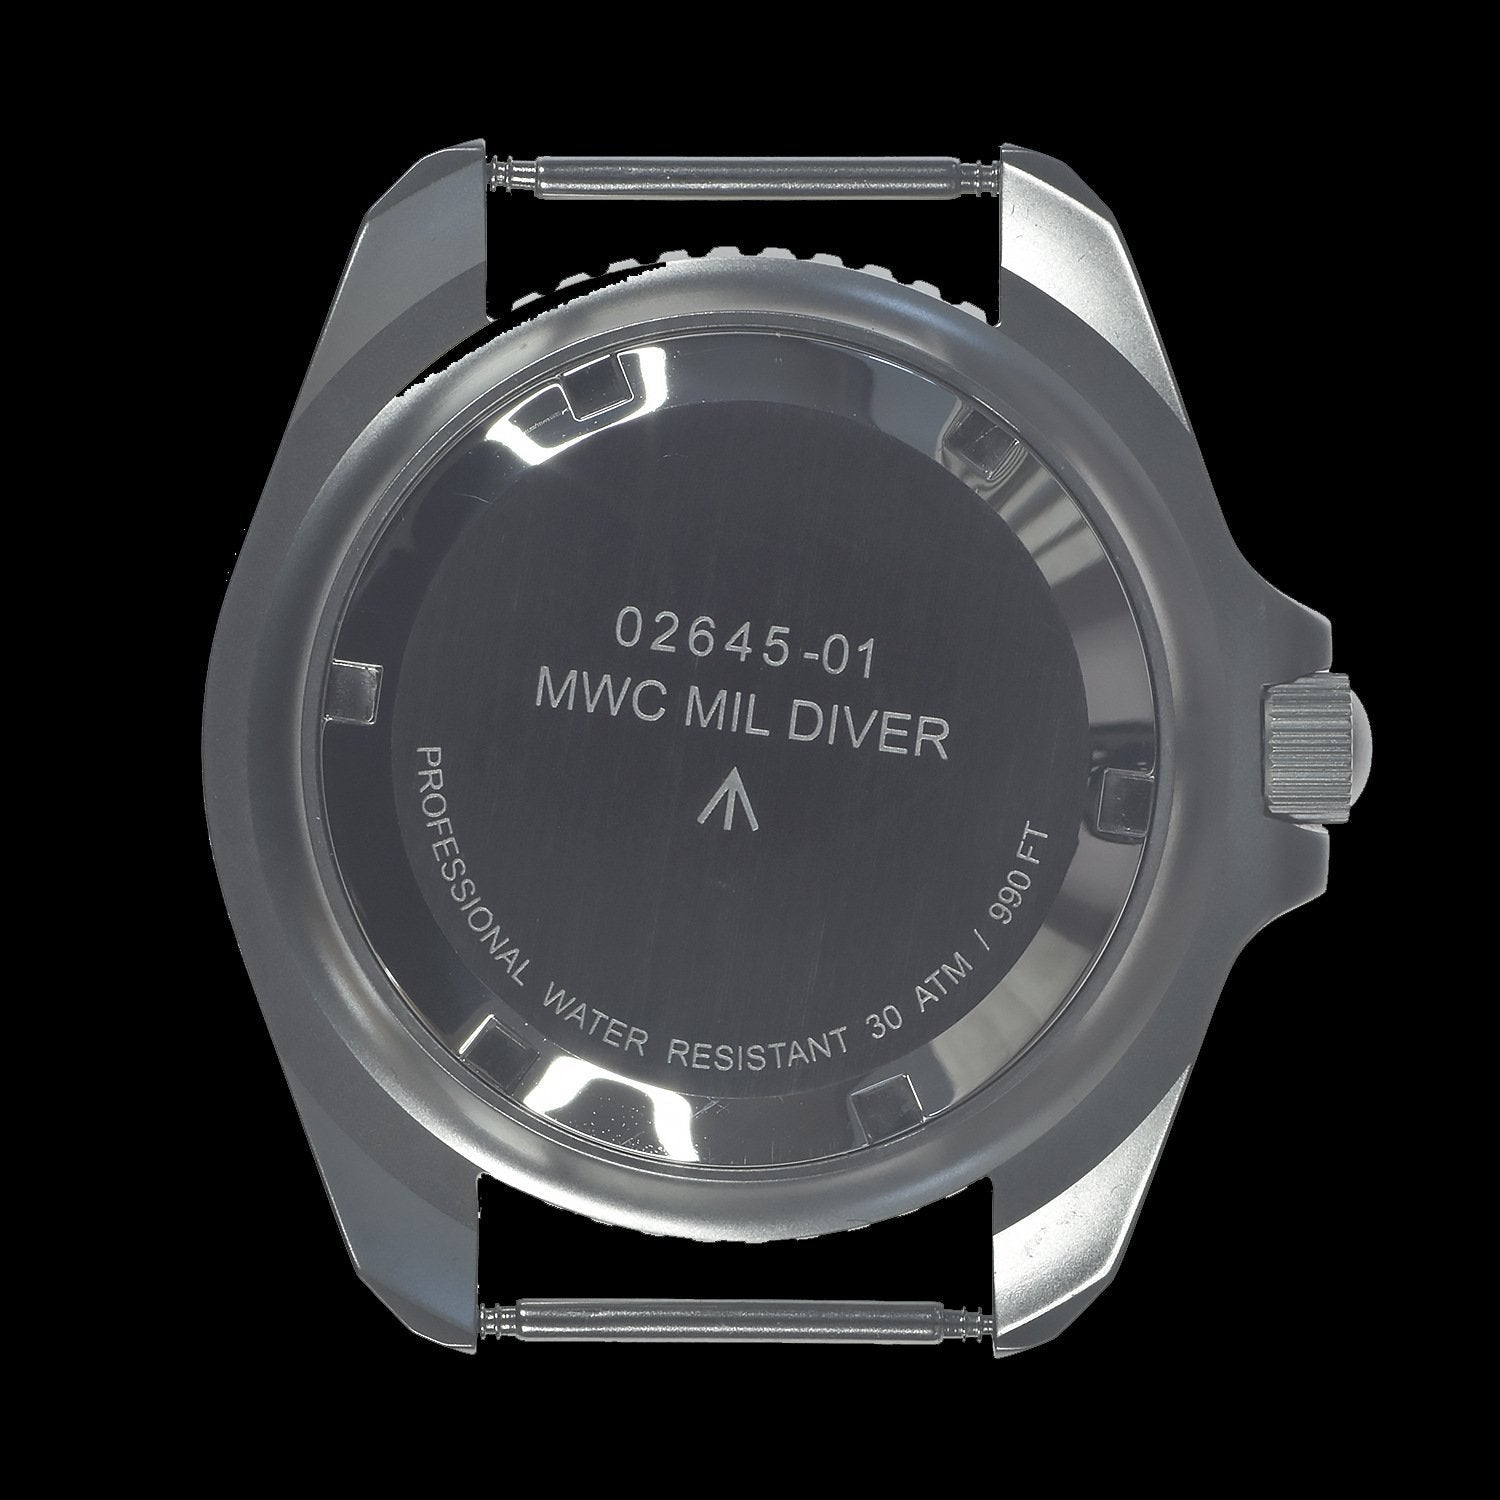 MWC 1999-2001 Pattern Stainless Steel Quartz Military Divers Watch on Grey NATO Strap / Brand New & Unissued